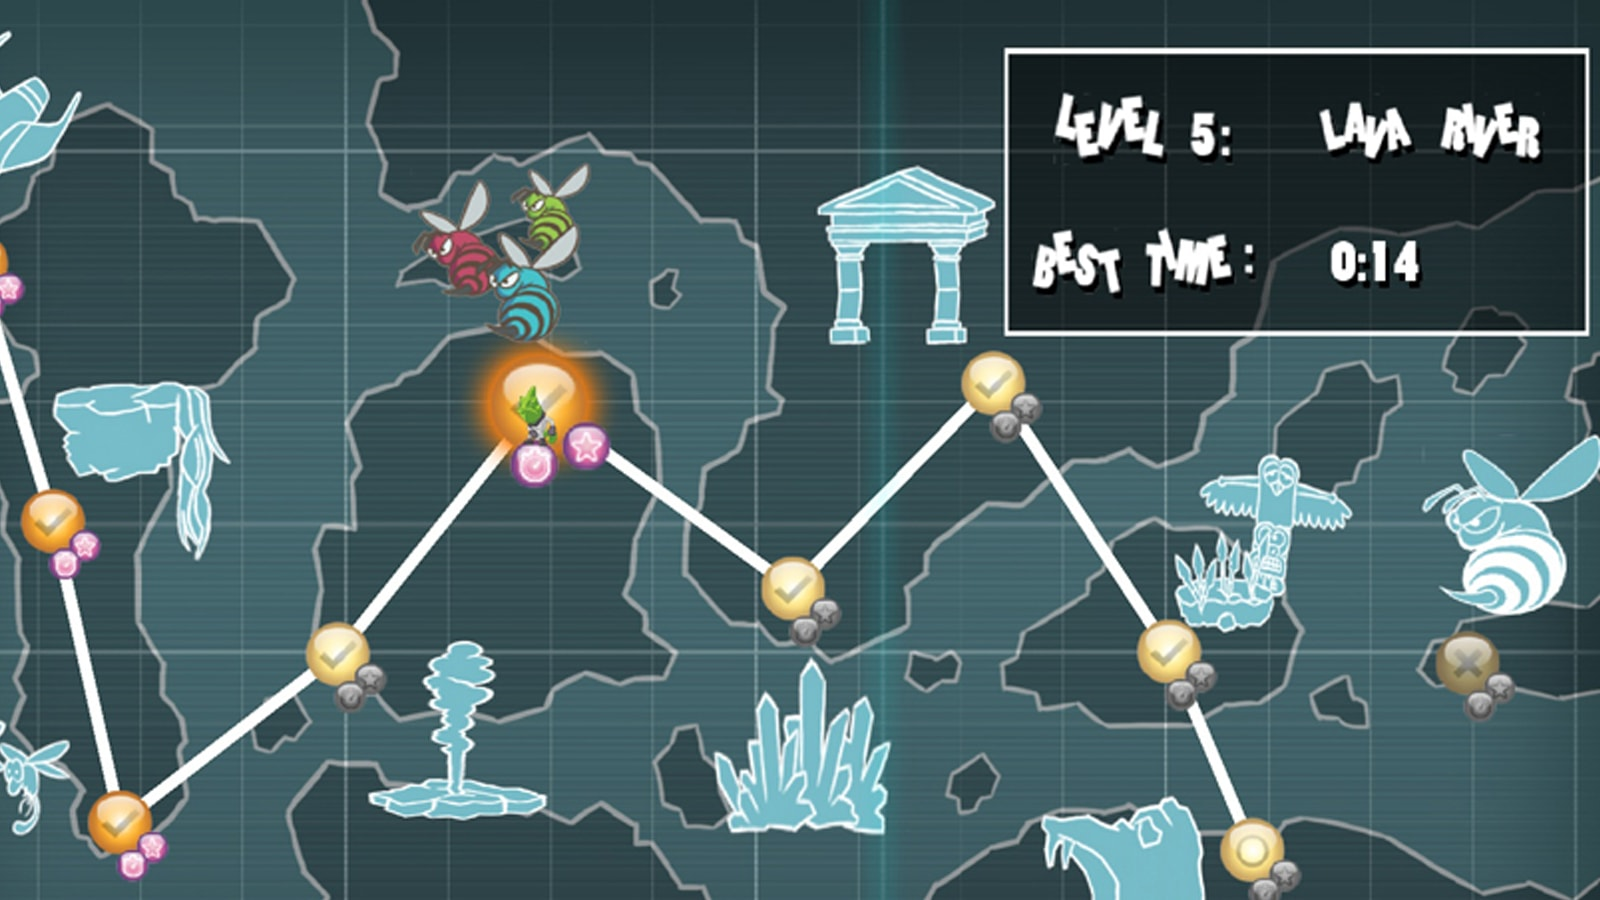 The game's overworld map, full of icons for different levels.